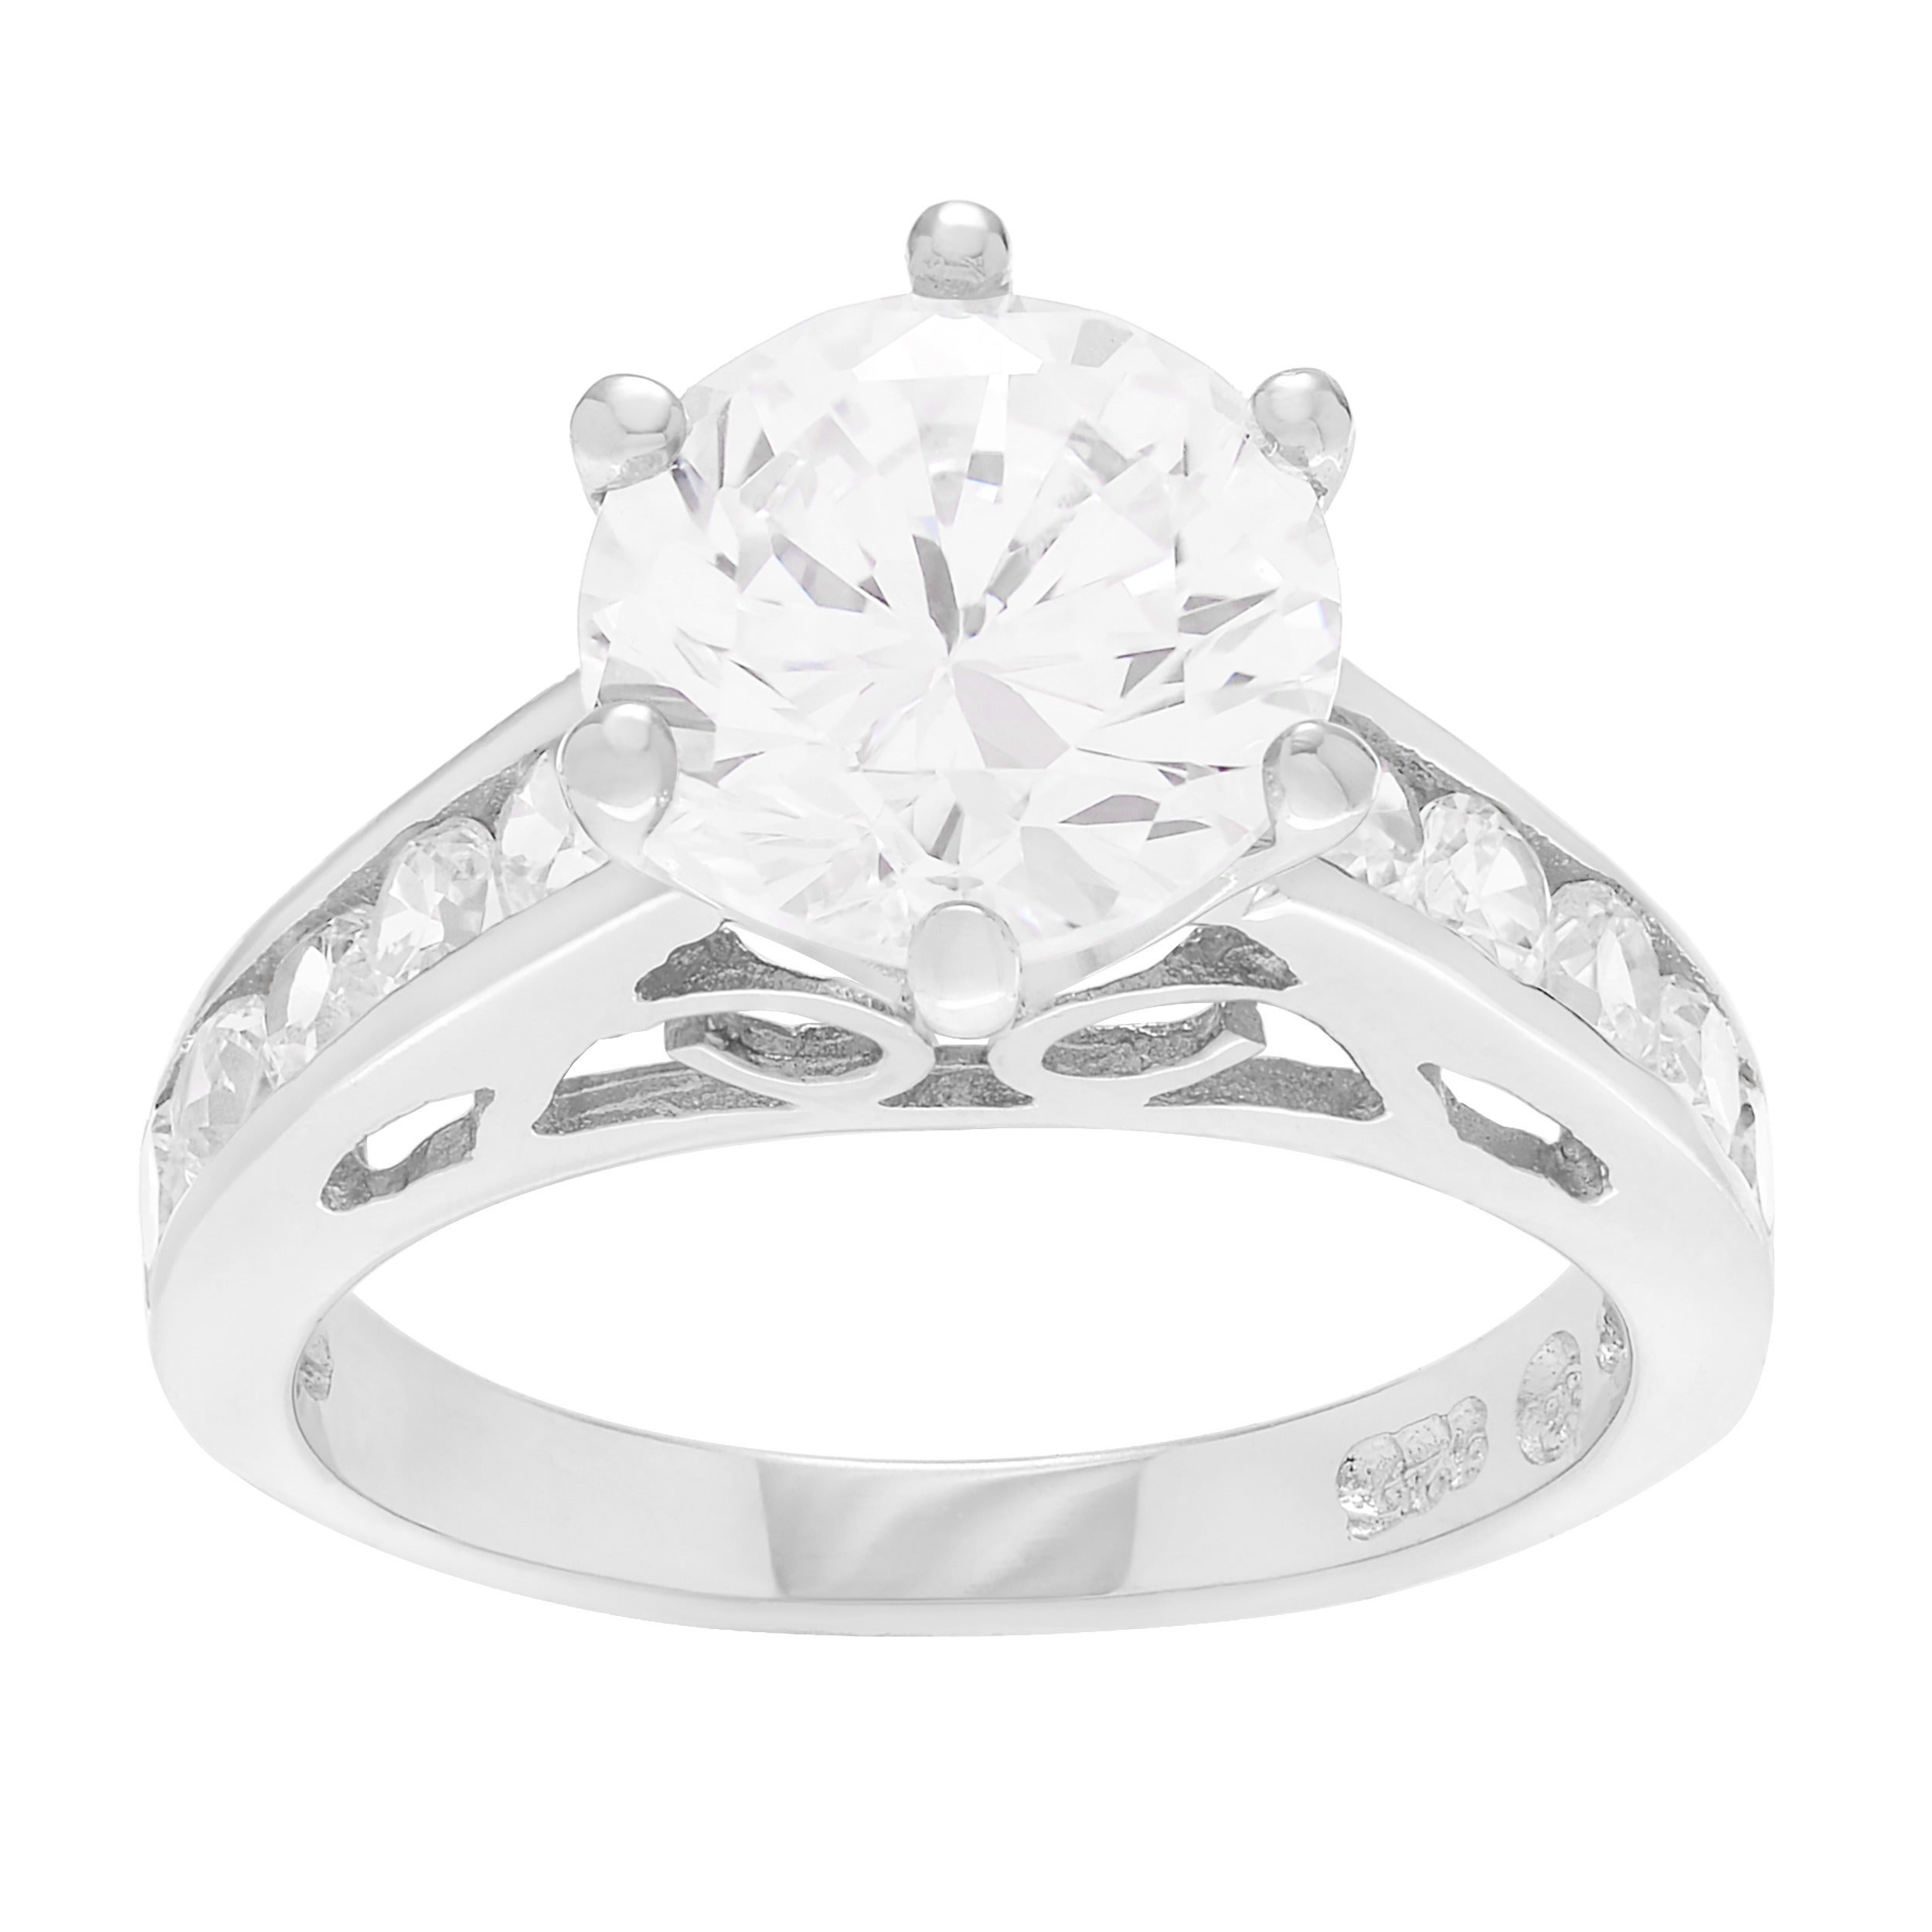 million wedding gm engagement dollar spend an much rings a ring on blog to email should how man